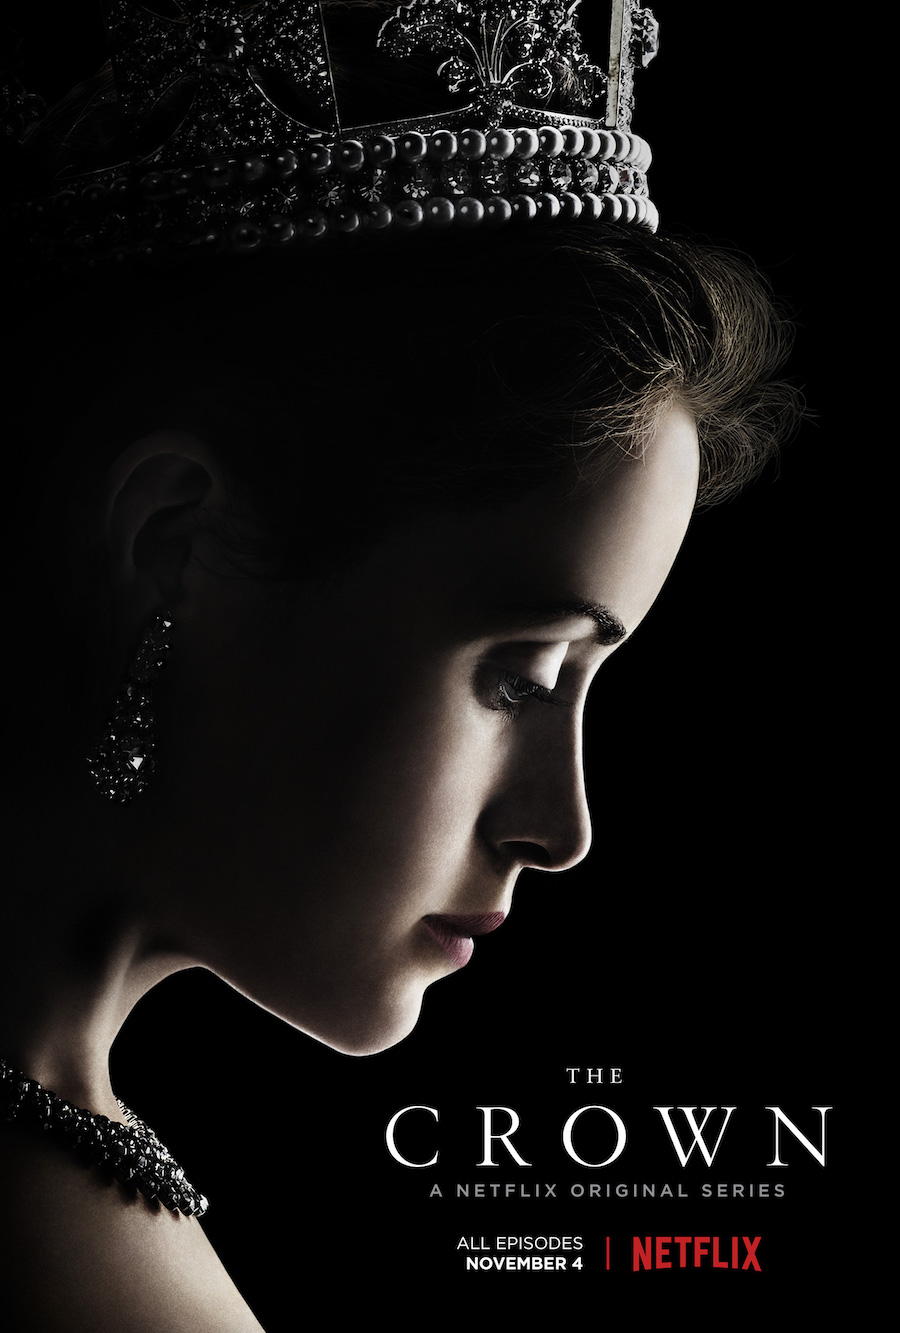 The Crown Poster Netflix